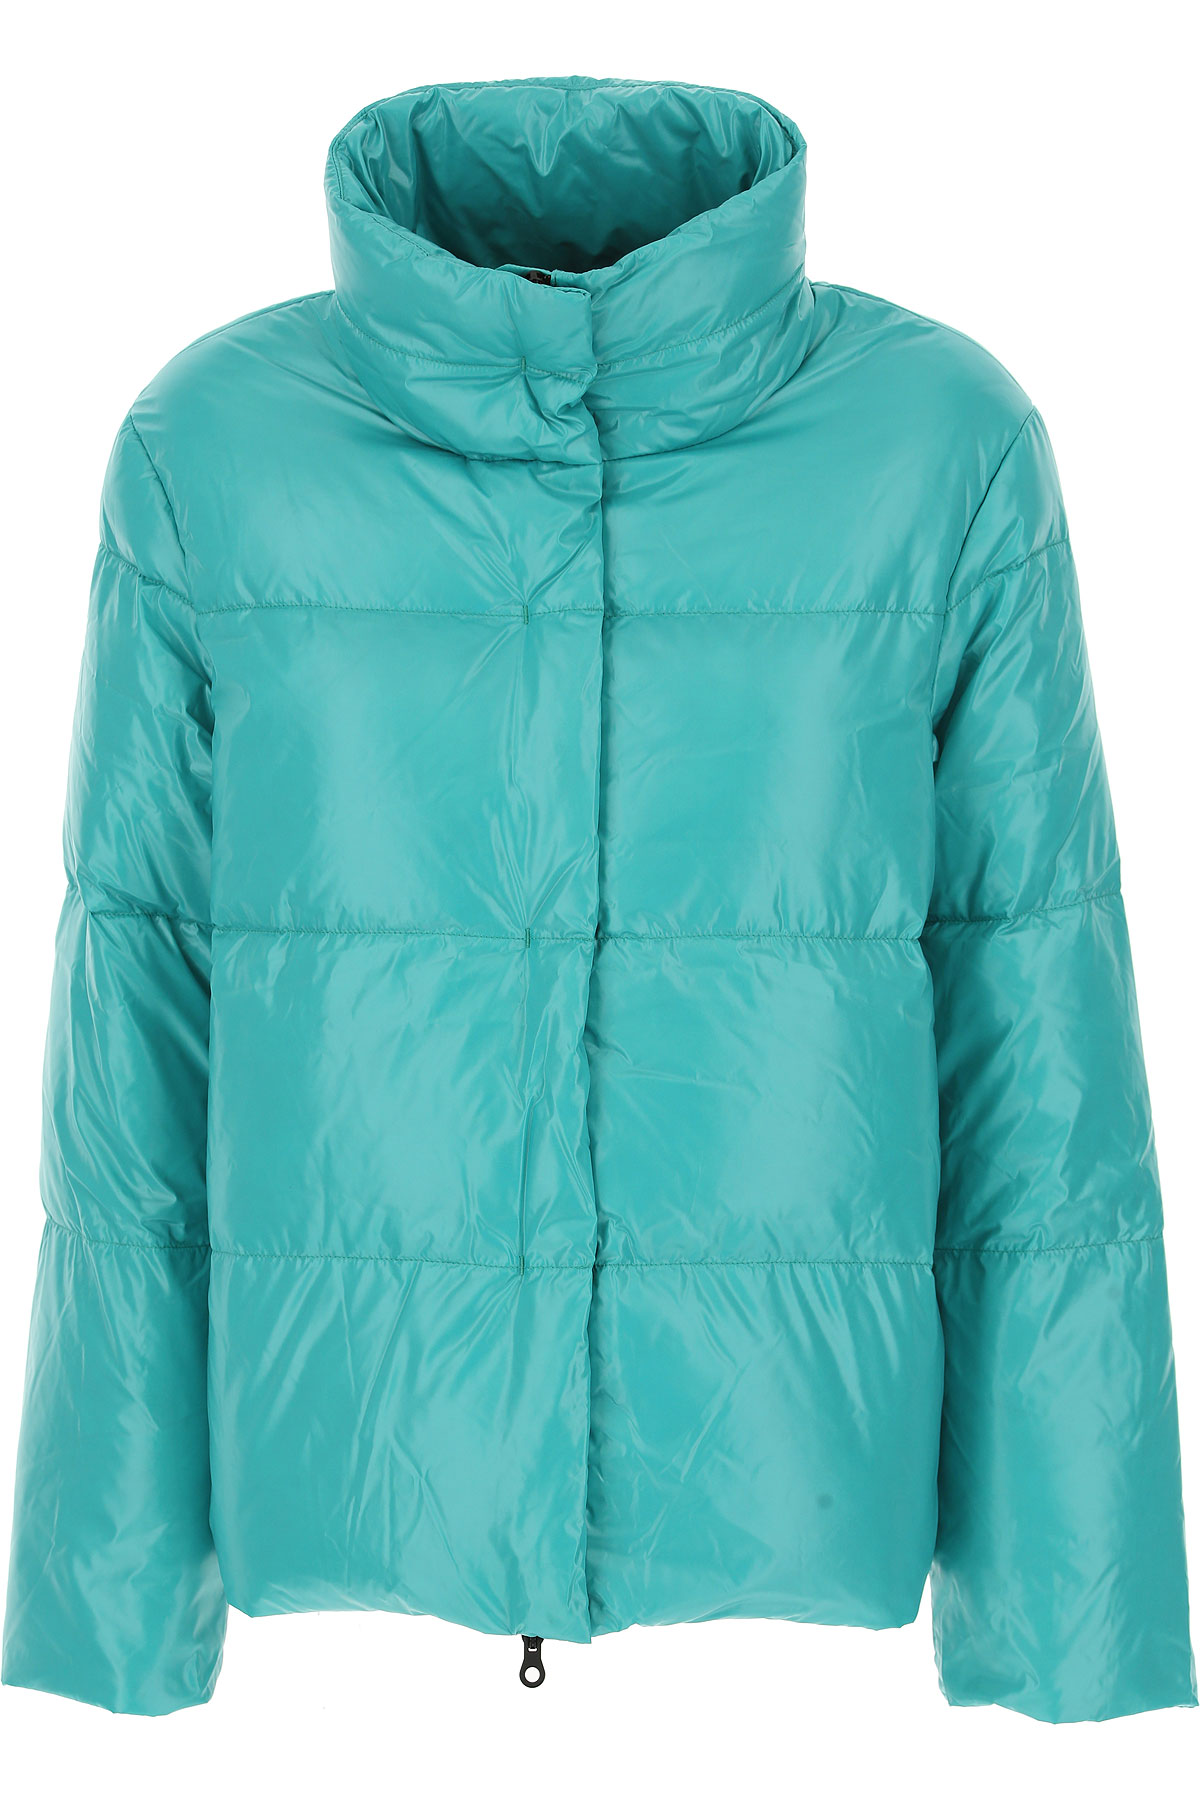 Image of Duvetica Down Jacket for Women, Puffer Ski Jacket, Caraibe Blue, Down, 2017, 4 6 8